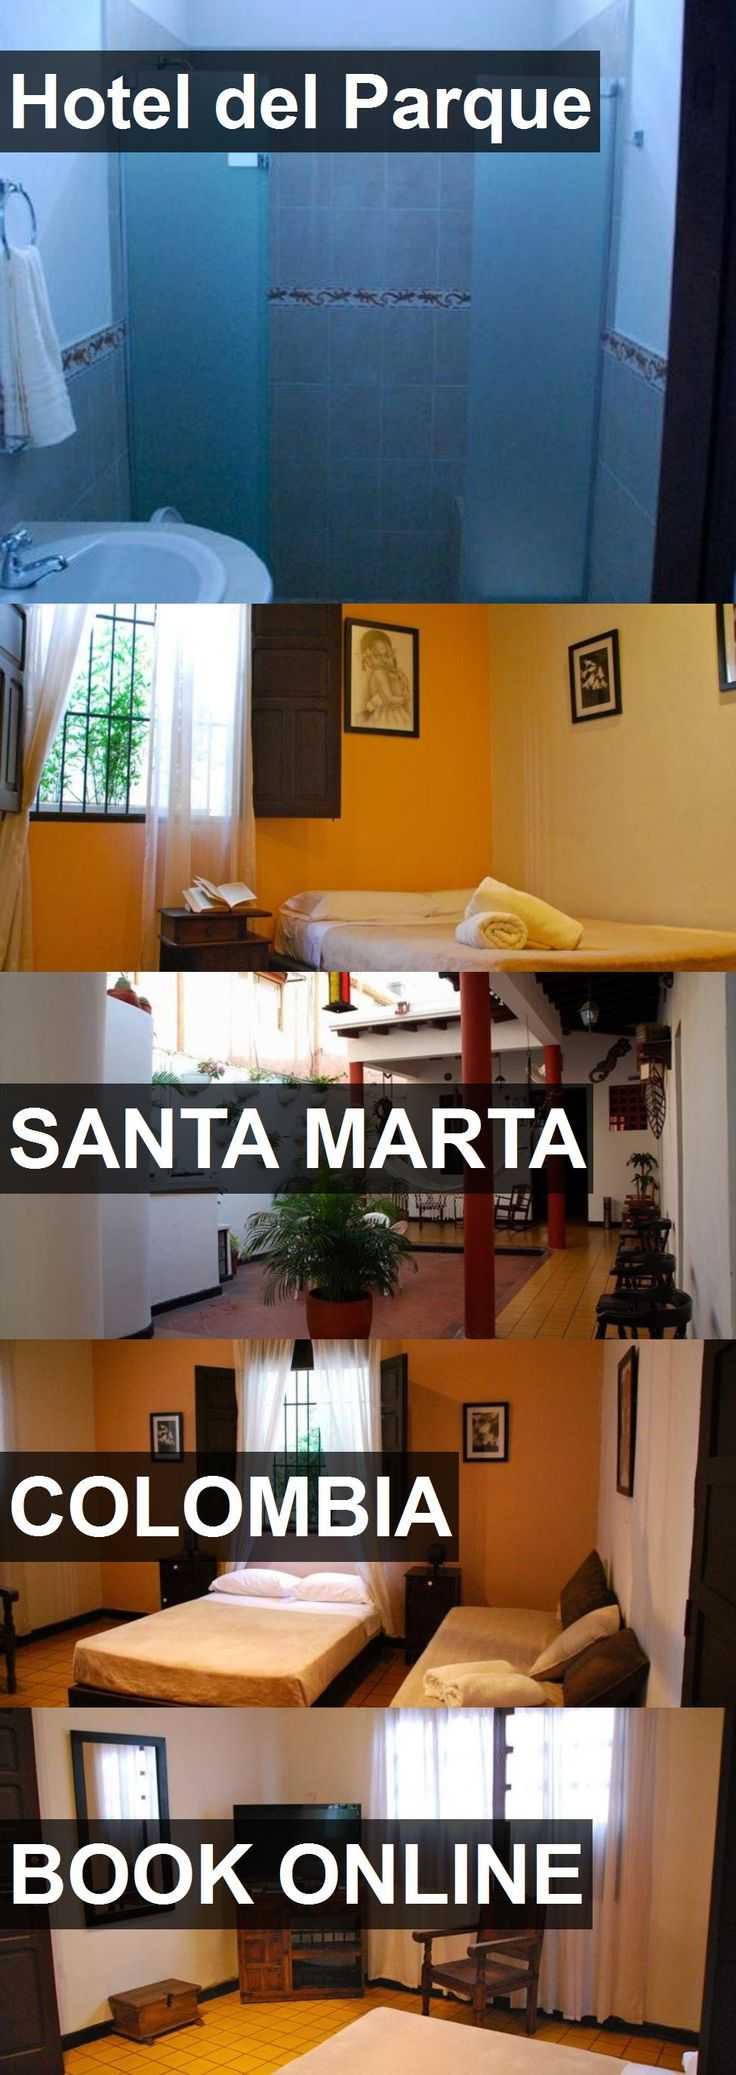 Hotel del Parque in Santa Marta, Colombia. For more information, photos, reviews and best prices please follow the link. #Colombia #SantaMarta #travel #vacation #hotel